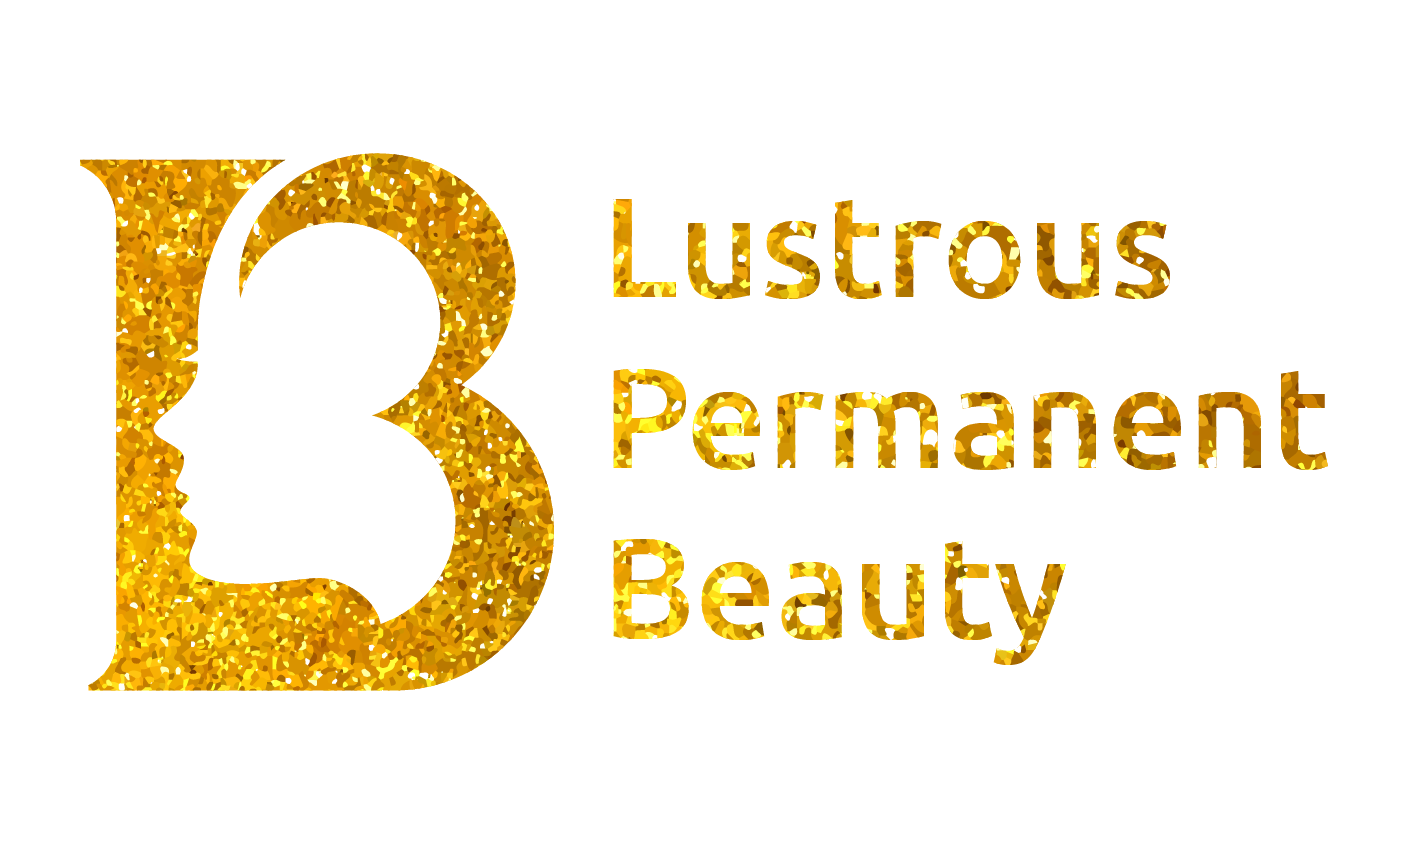 Lustrous Permanent Beauty